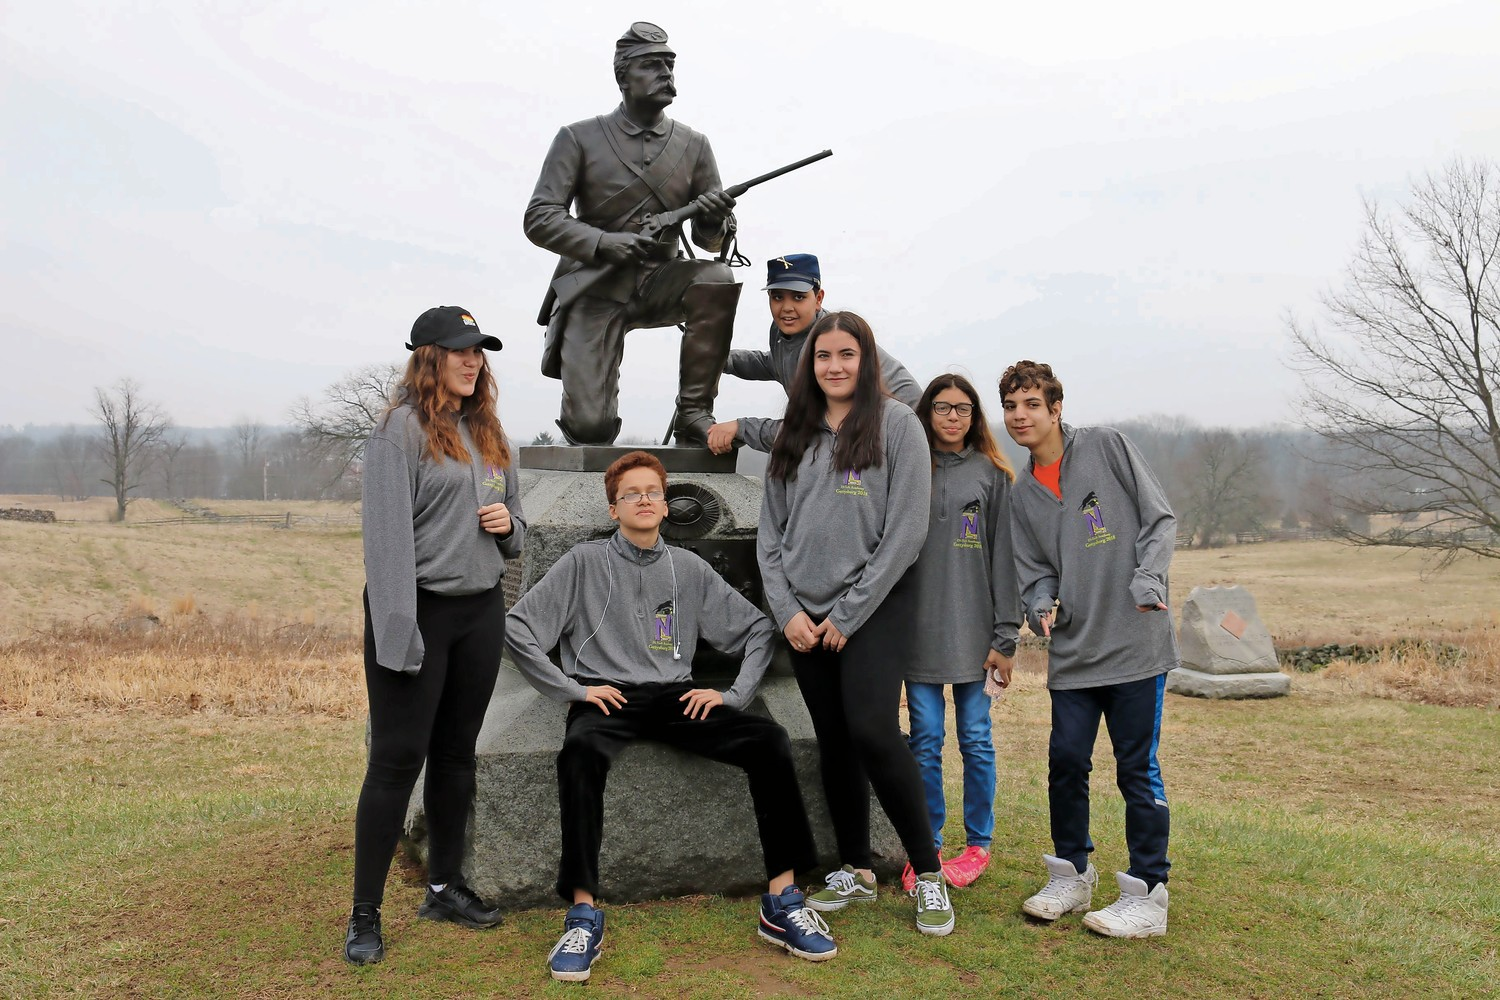 A trip to Gettysburg National Military Park brought together students from across grades at IN-Tech Academy. They traveled to the park to learn more about the Civil War and American history.